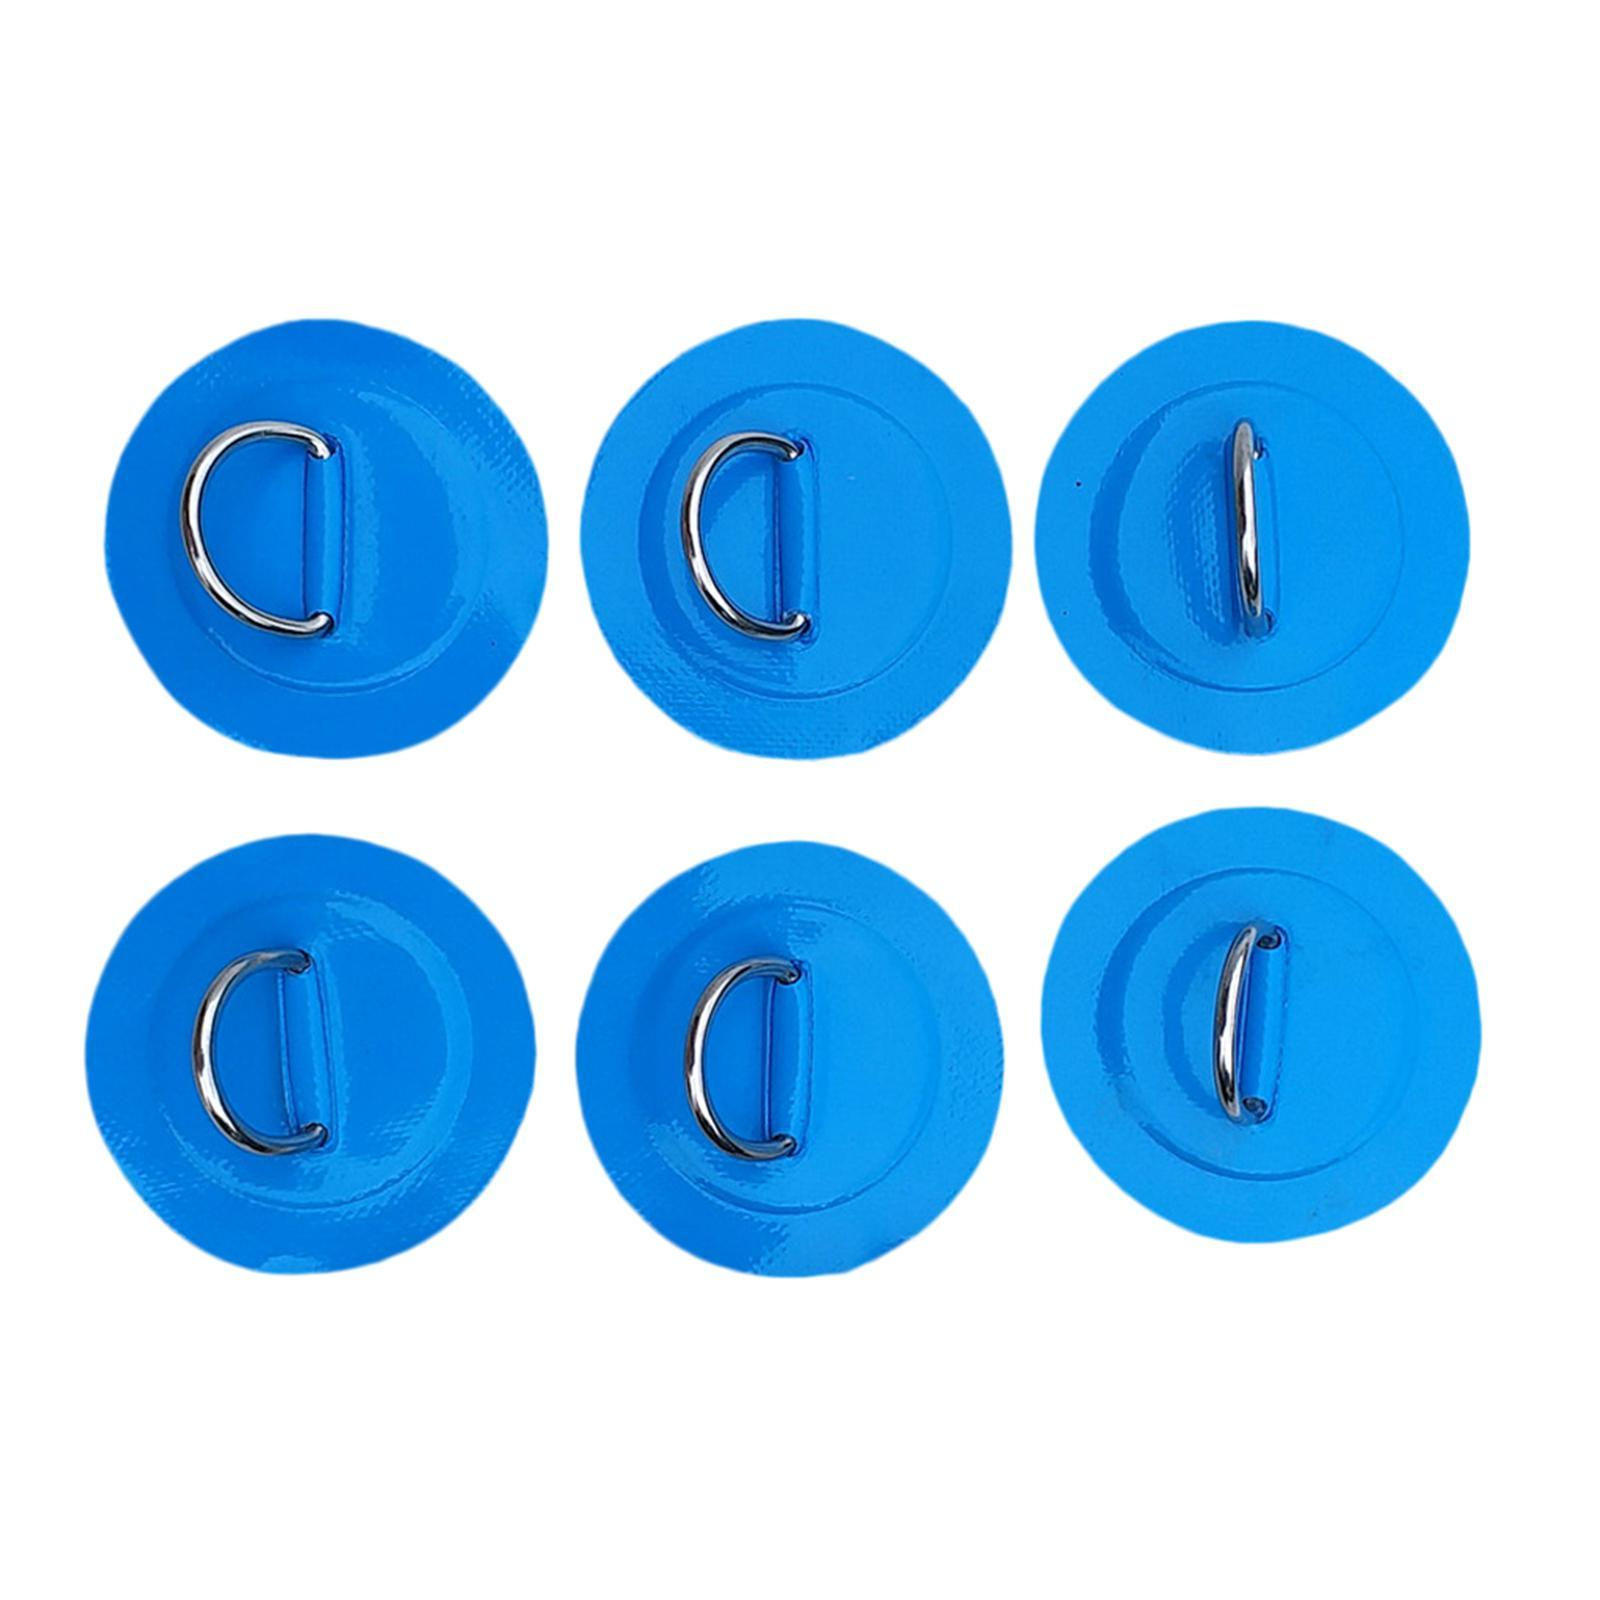 SUP-Stand-Up-Paddle-Bungee-Corda-Elastico-Deck-Rigging-Kit-Bungee-Per miniatura 9